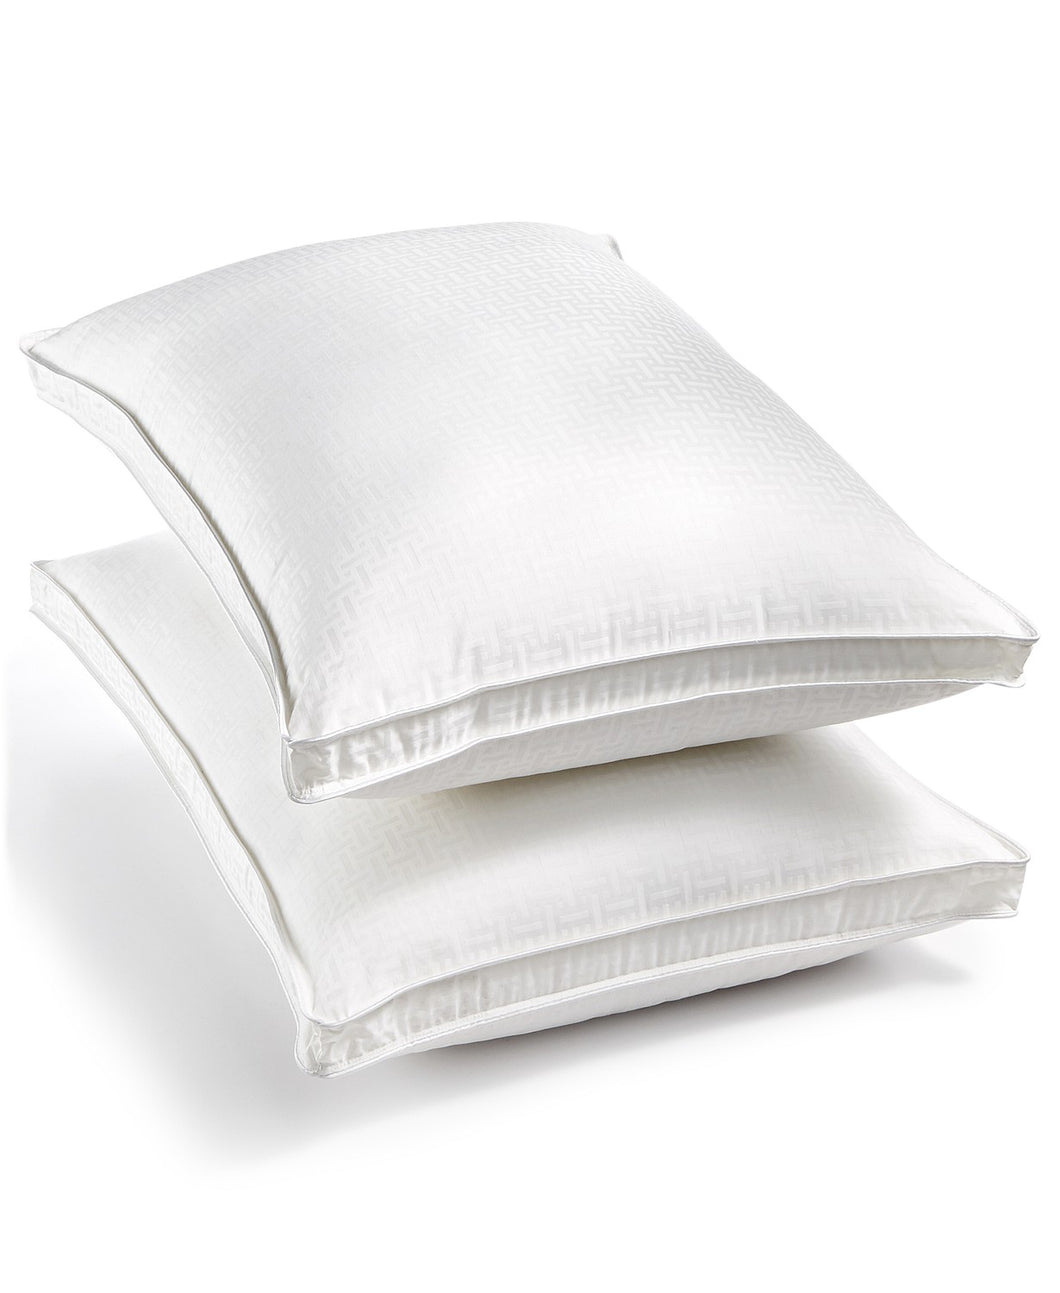 Cotton Firm King Down-Alternative Pillow